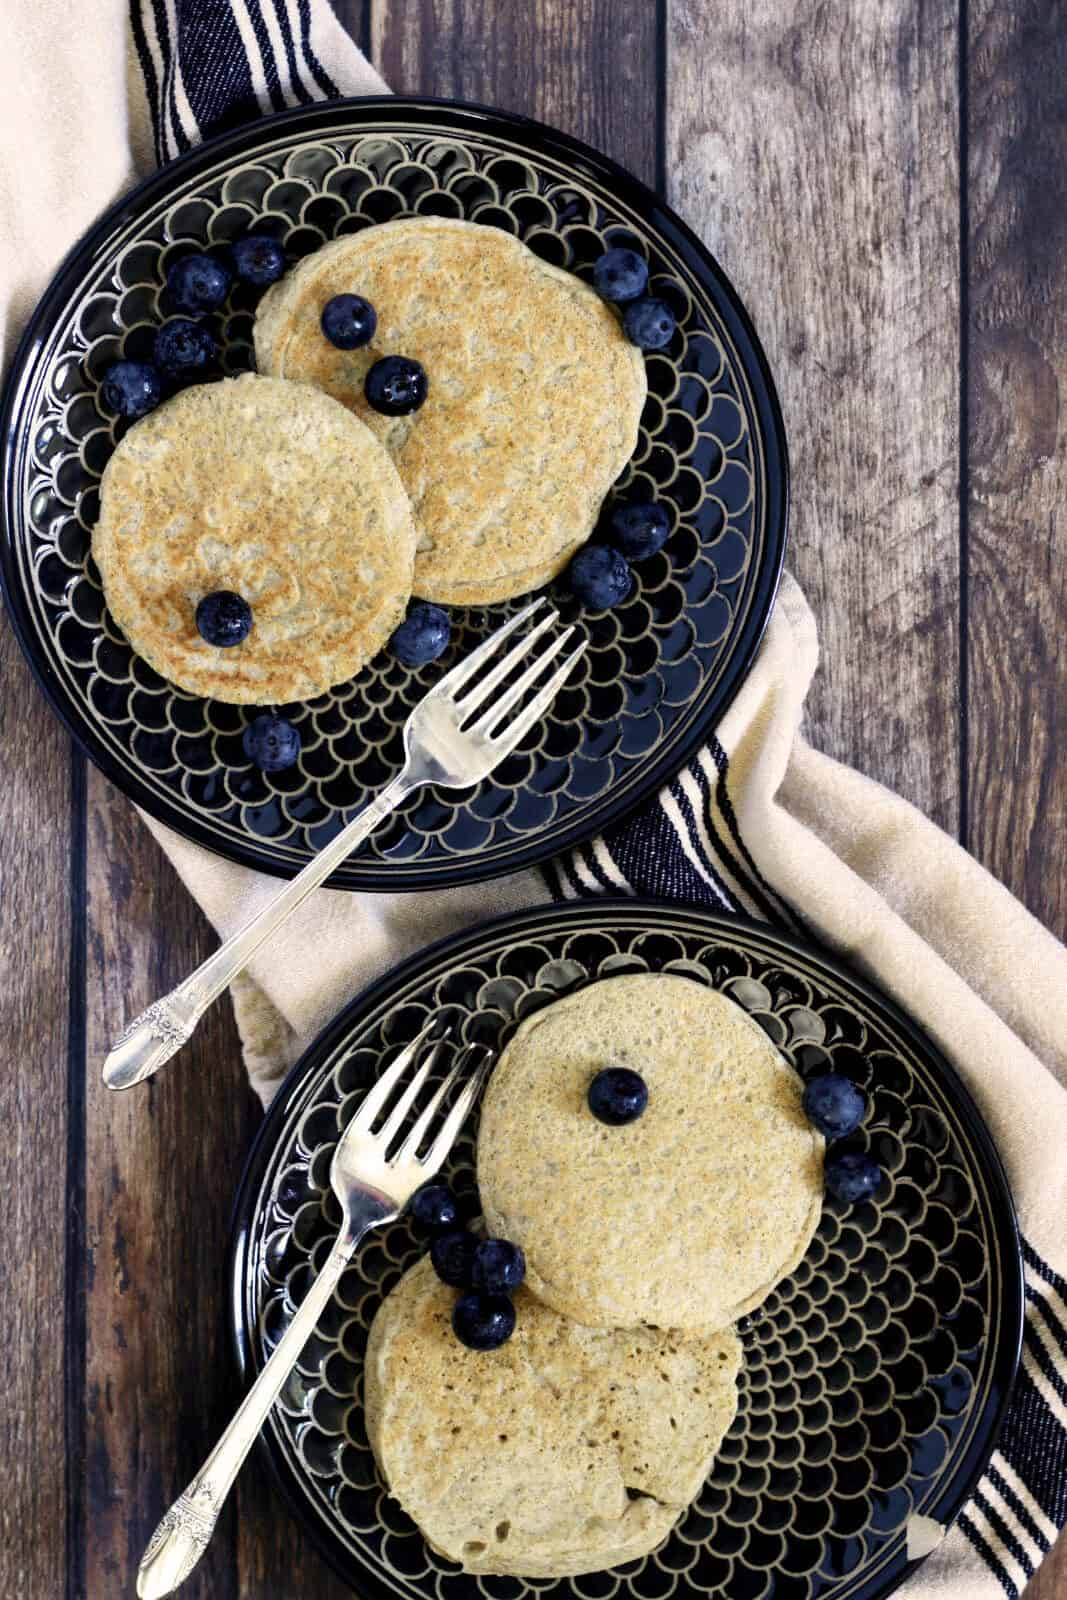 two black plates with two pancakes and some blueberries on each